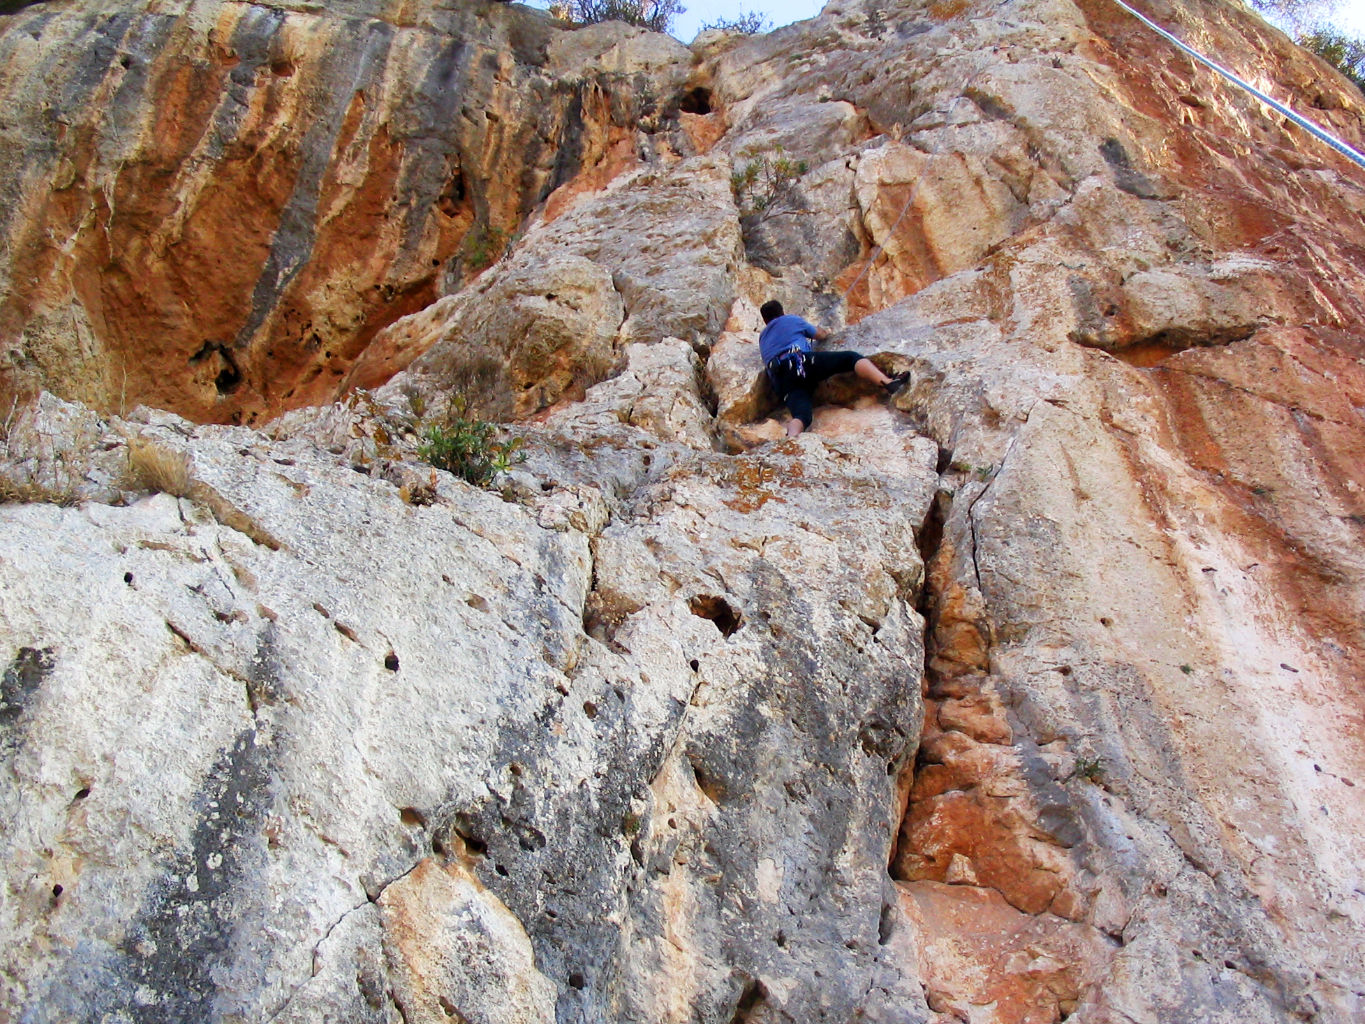 Stu climbing route in DESPLOMILANDIA area, El Chorro, Spain